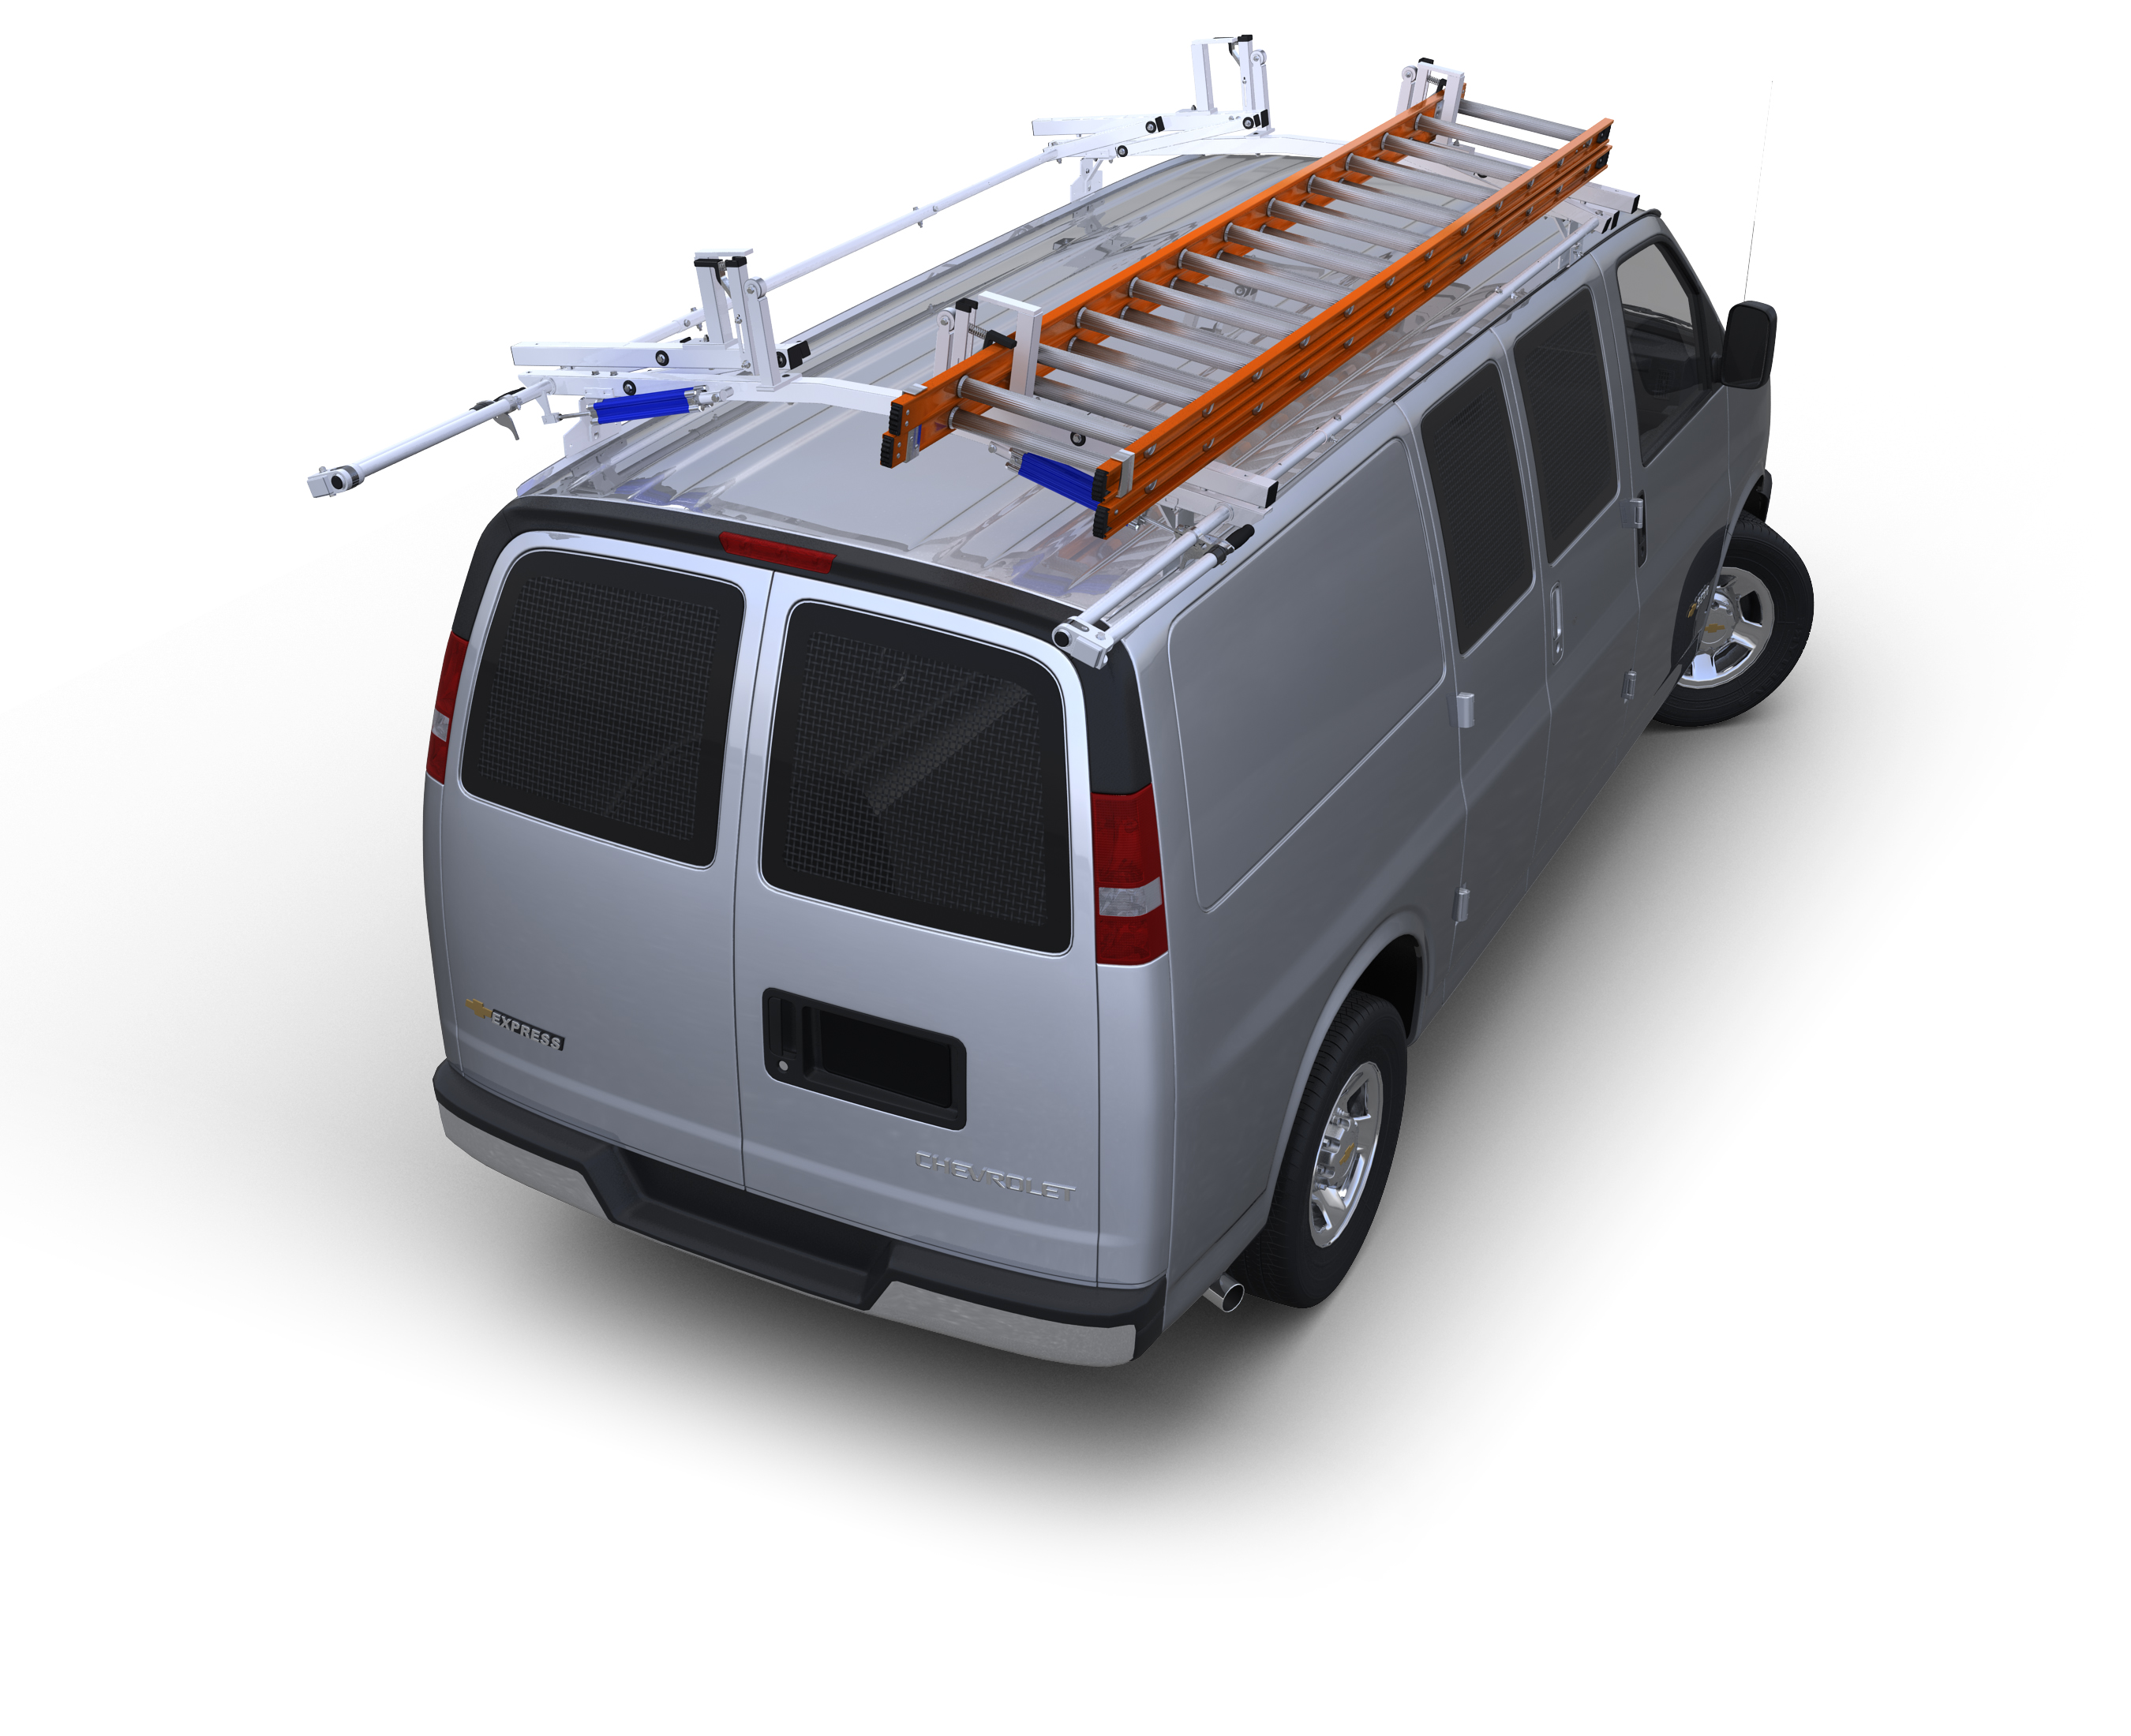 Surco Stainless Steel Van Ladders - SAVE 35%!